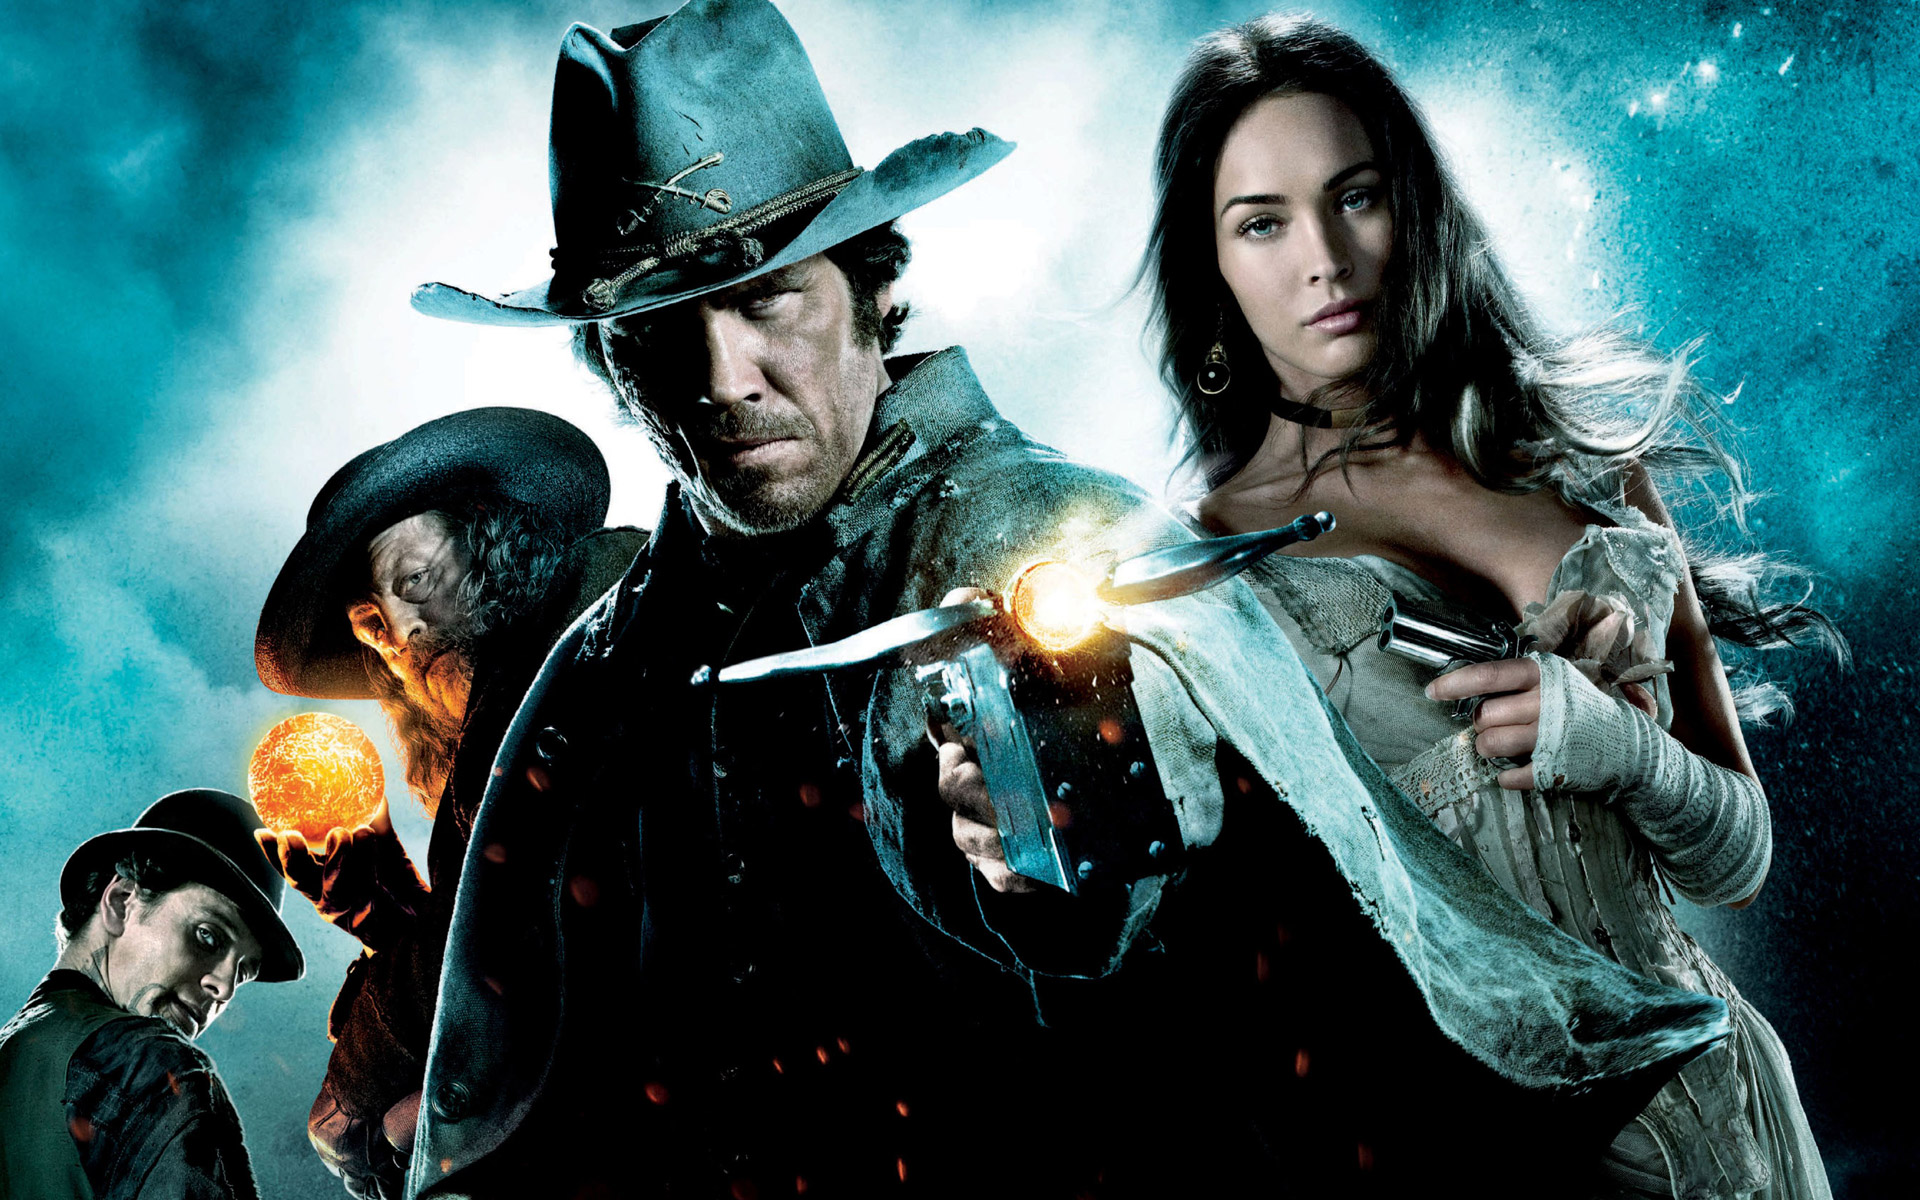 jonah hex full hd wallpaper and background image | 1920x1200 | id:167714